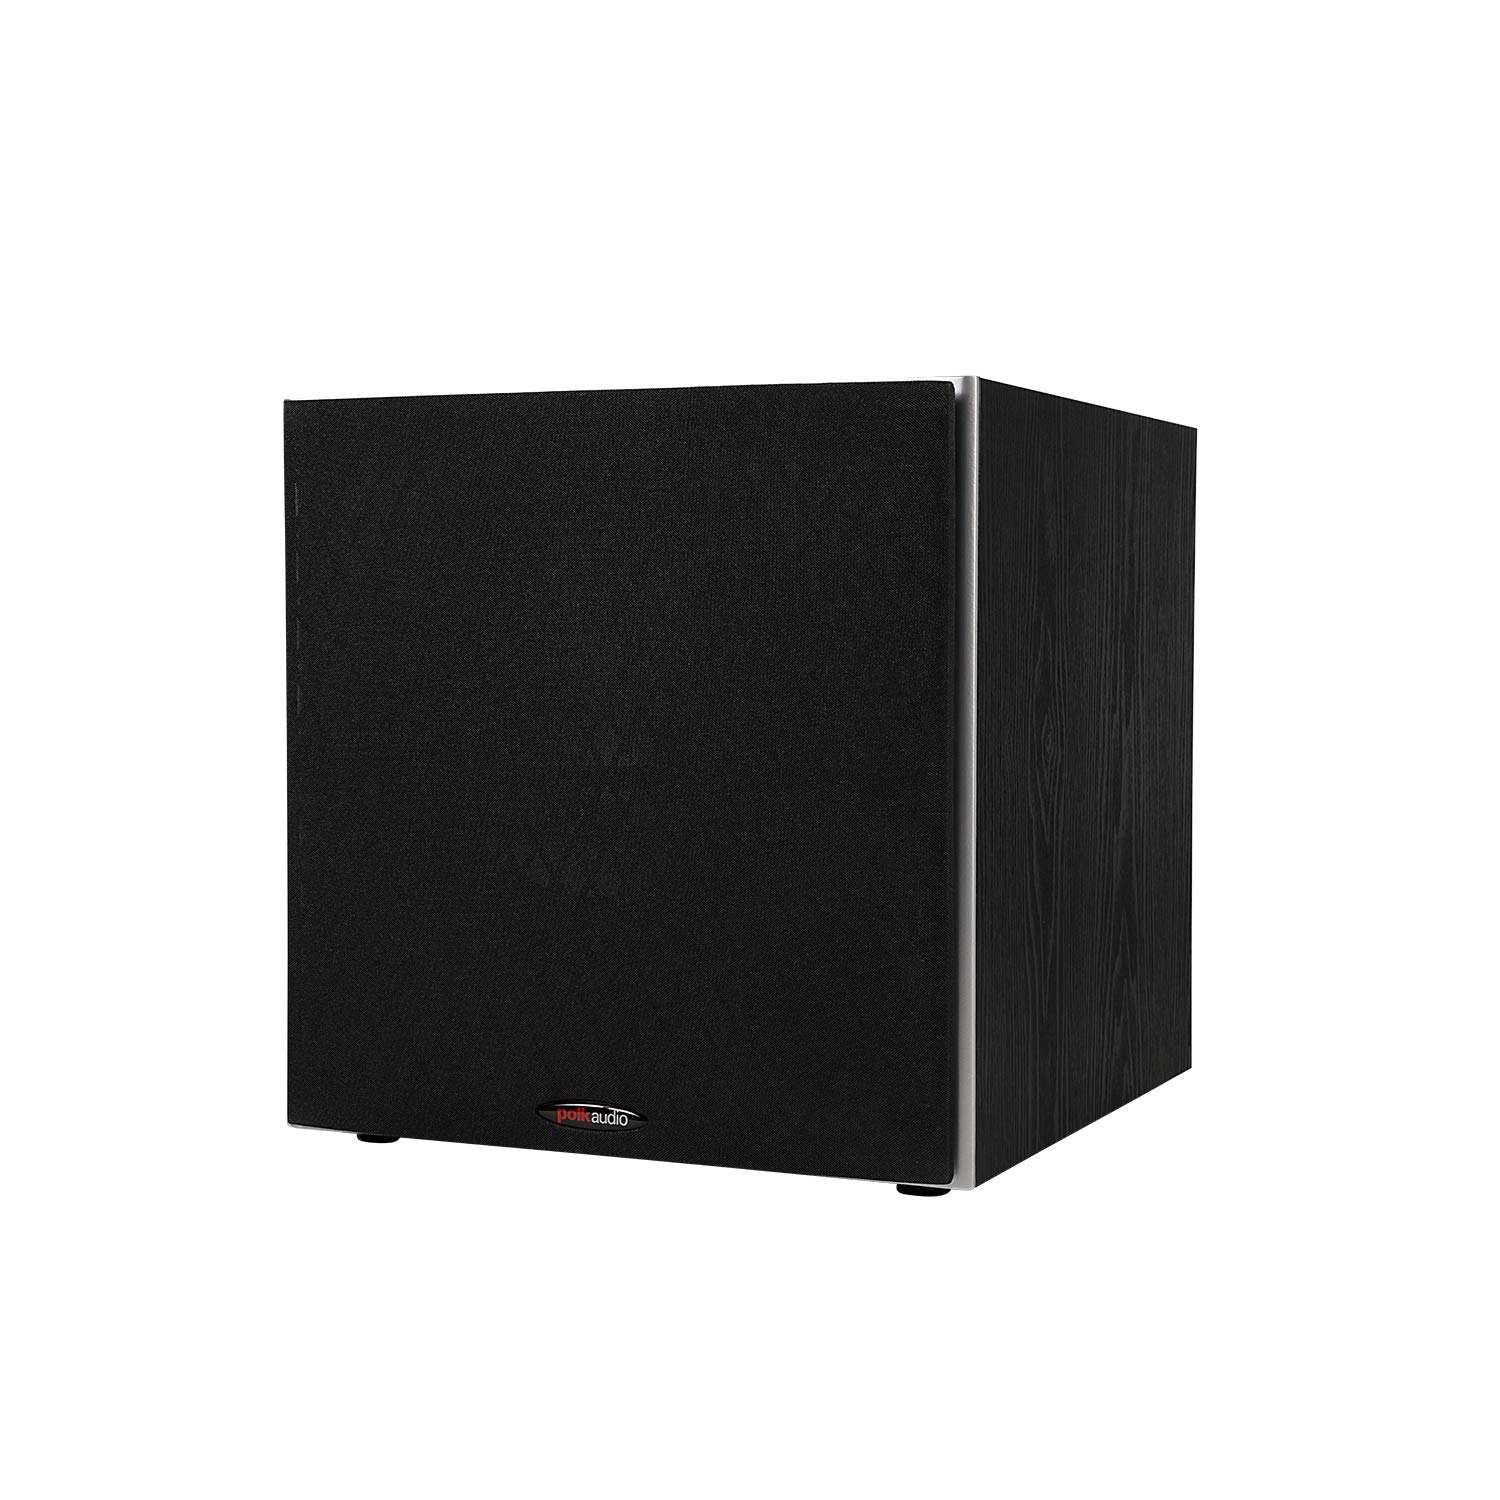 """Polk Audio PSW10 10"""" Powered Subwoofer - Power Port Technology, Up to 100 Watts, Big Bass in Compact Design, Easy Setup with Home Theater Systems Black"""